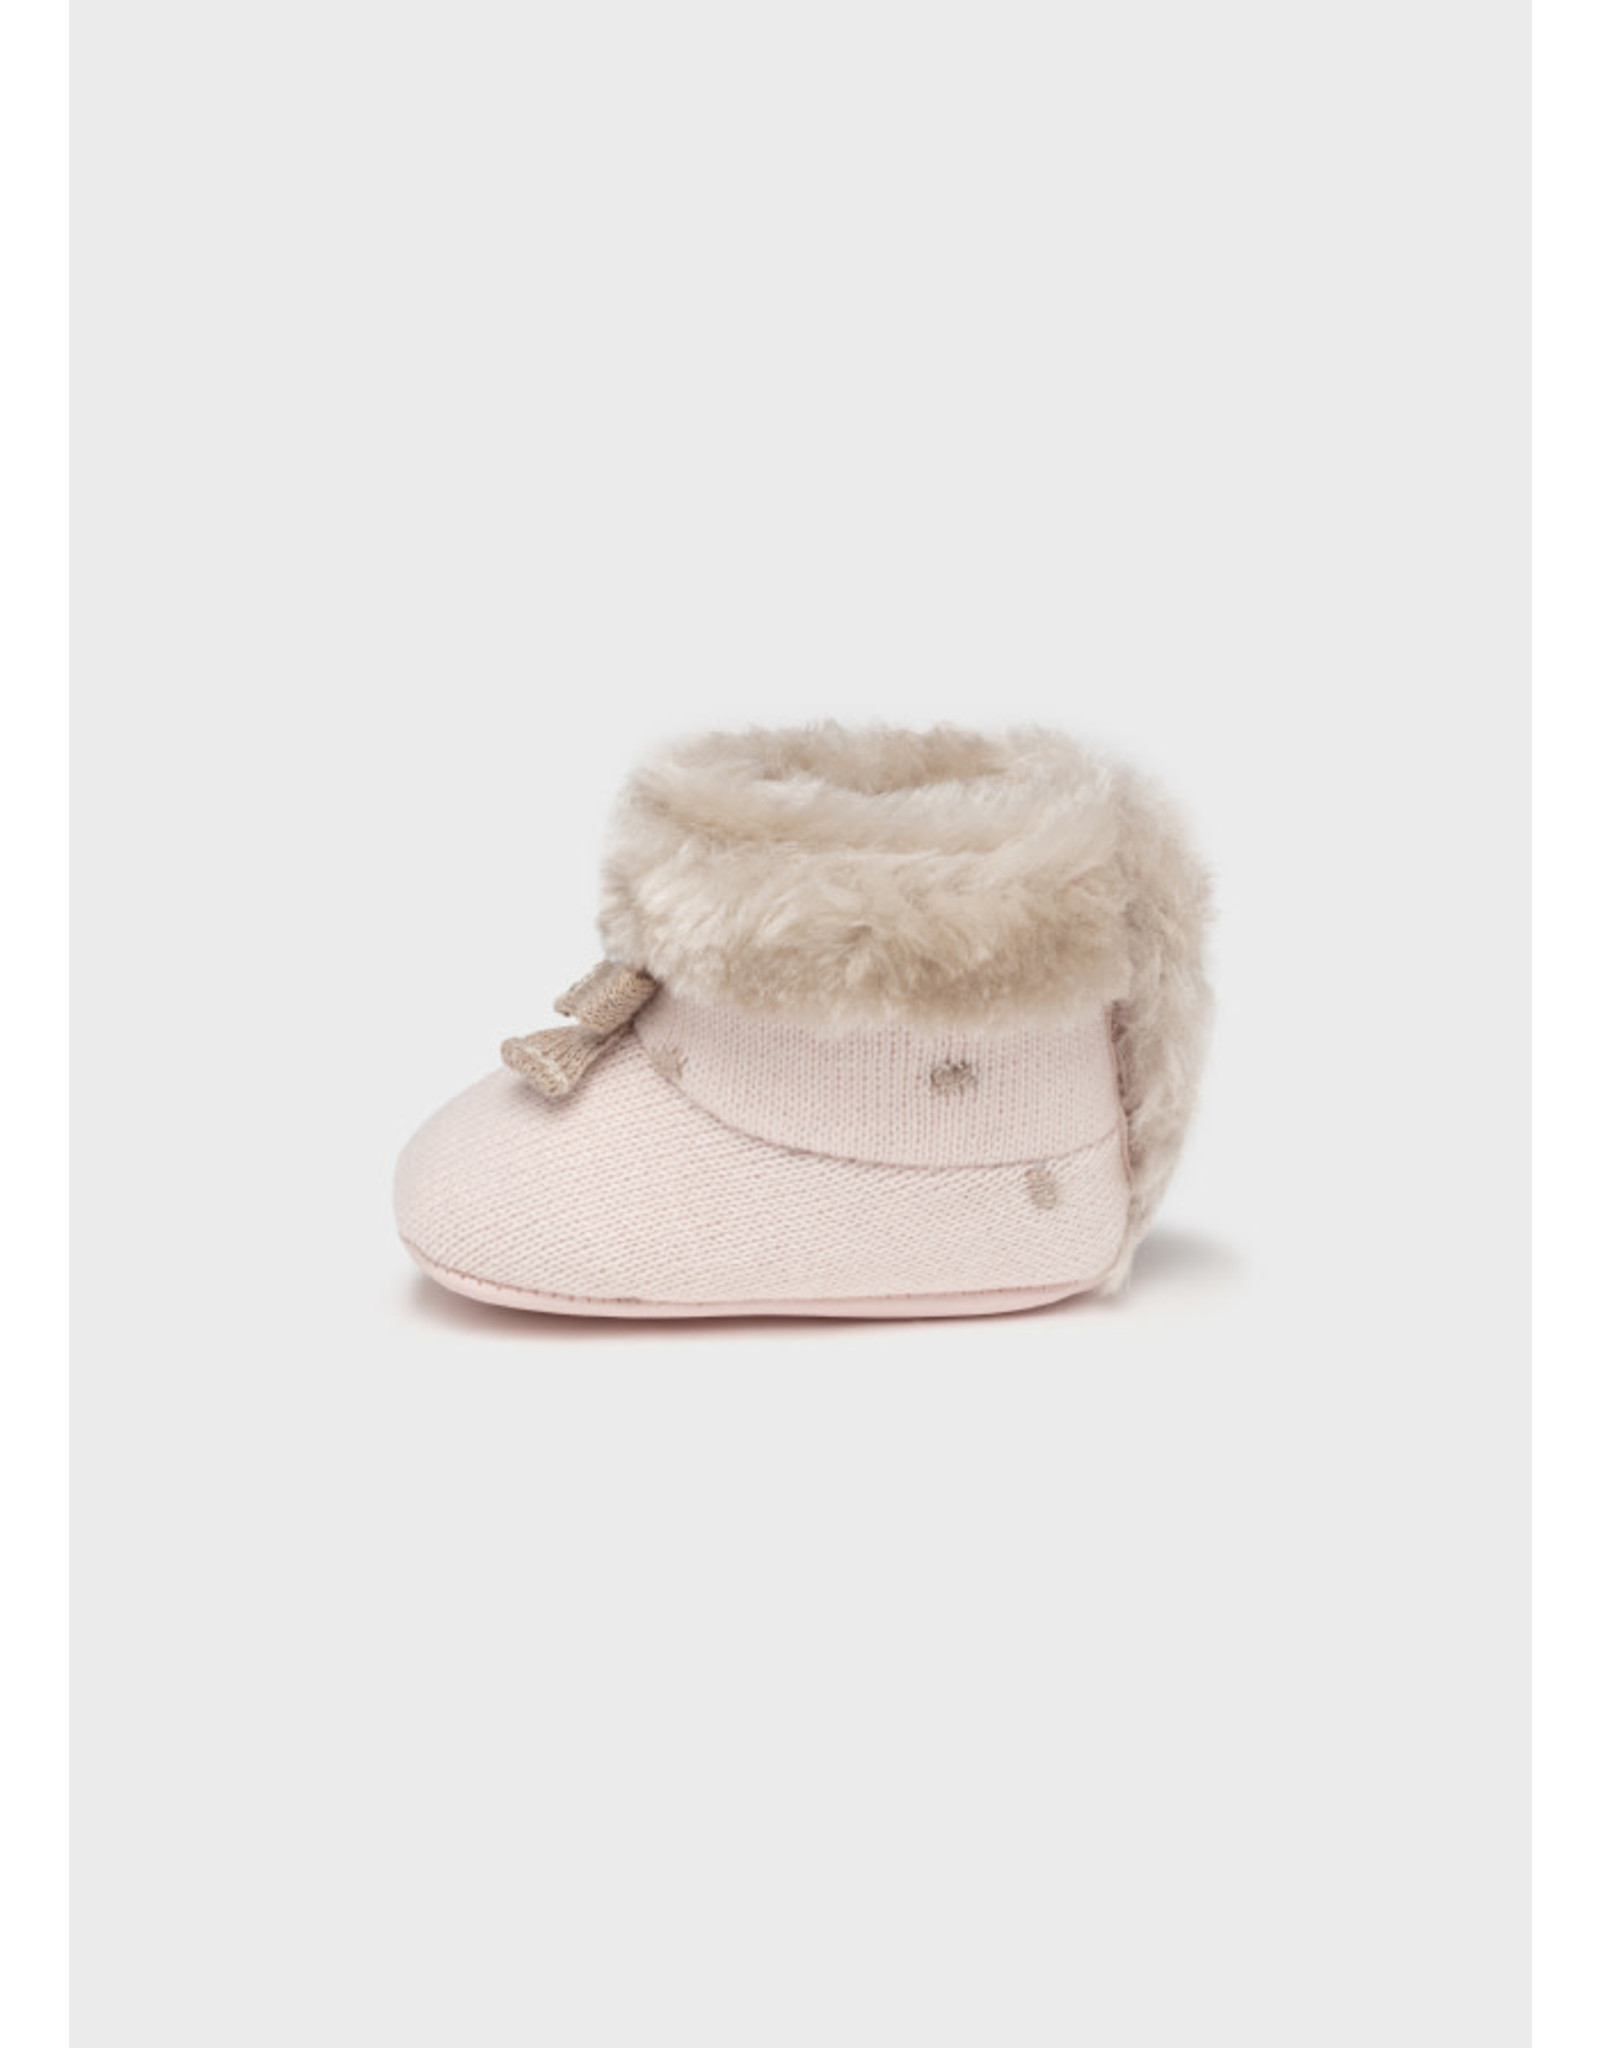 Mayoral Baby Rose Knit Boots